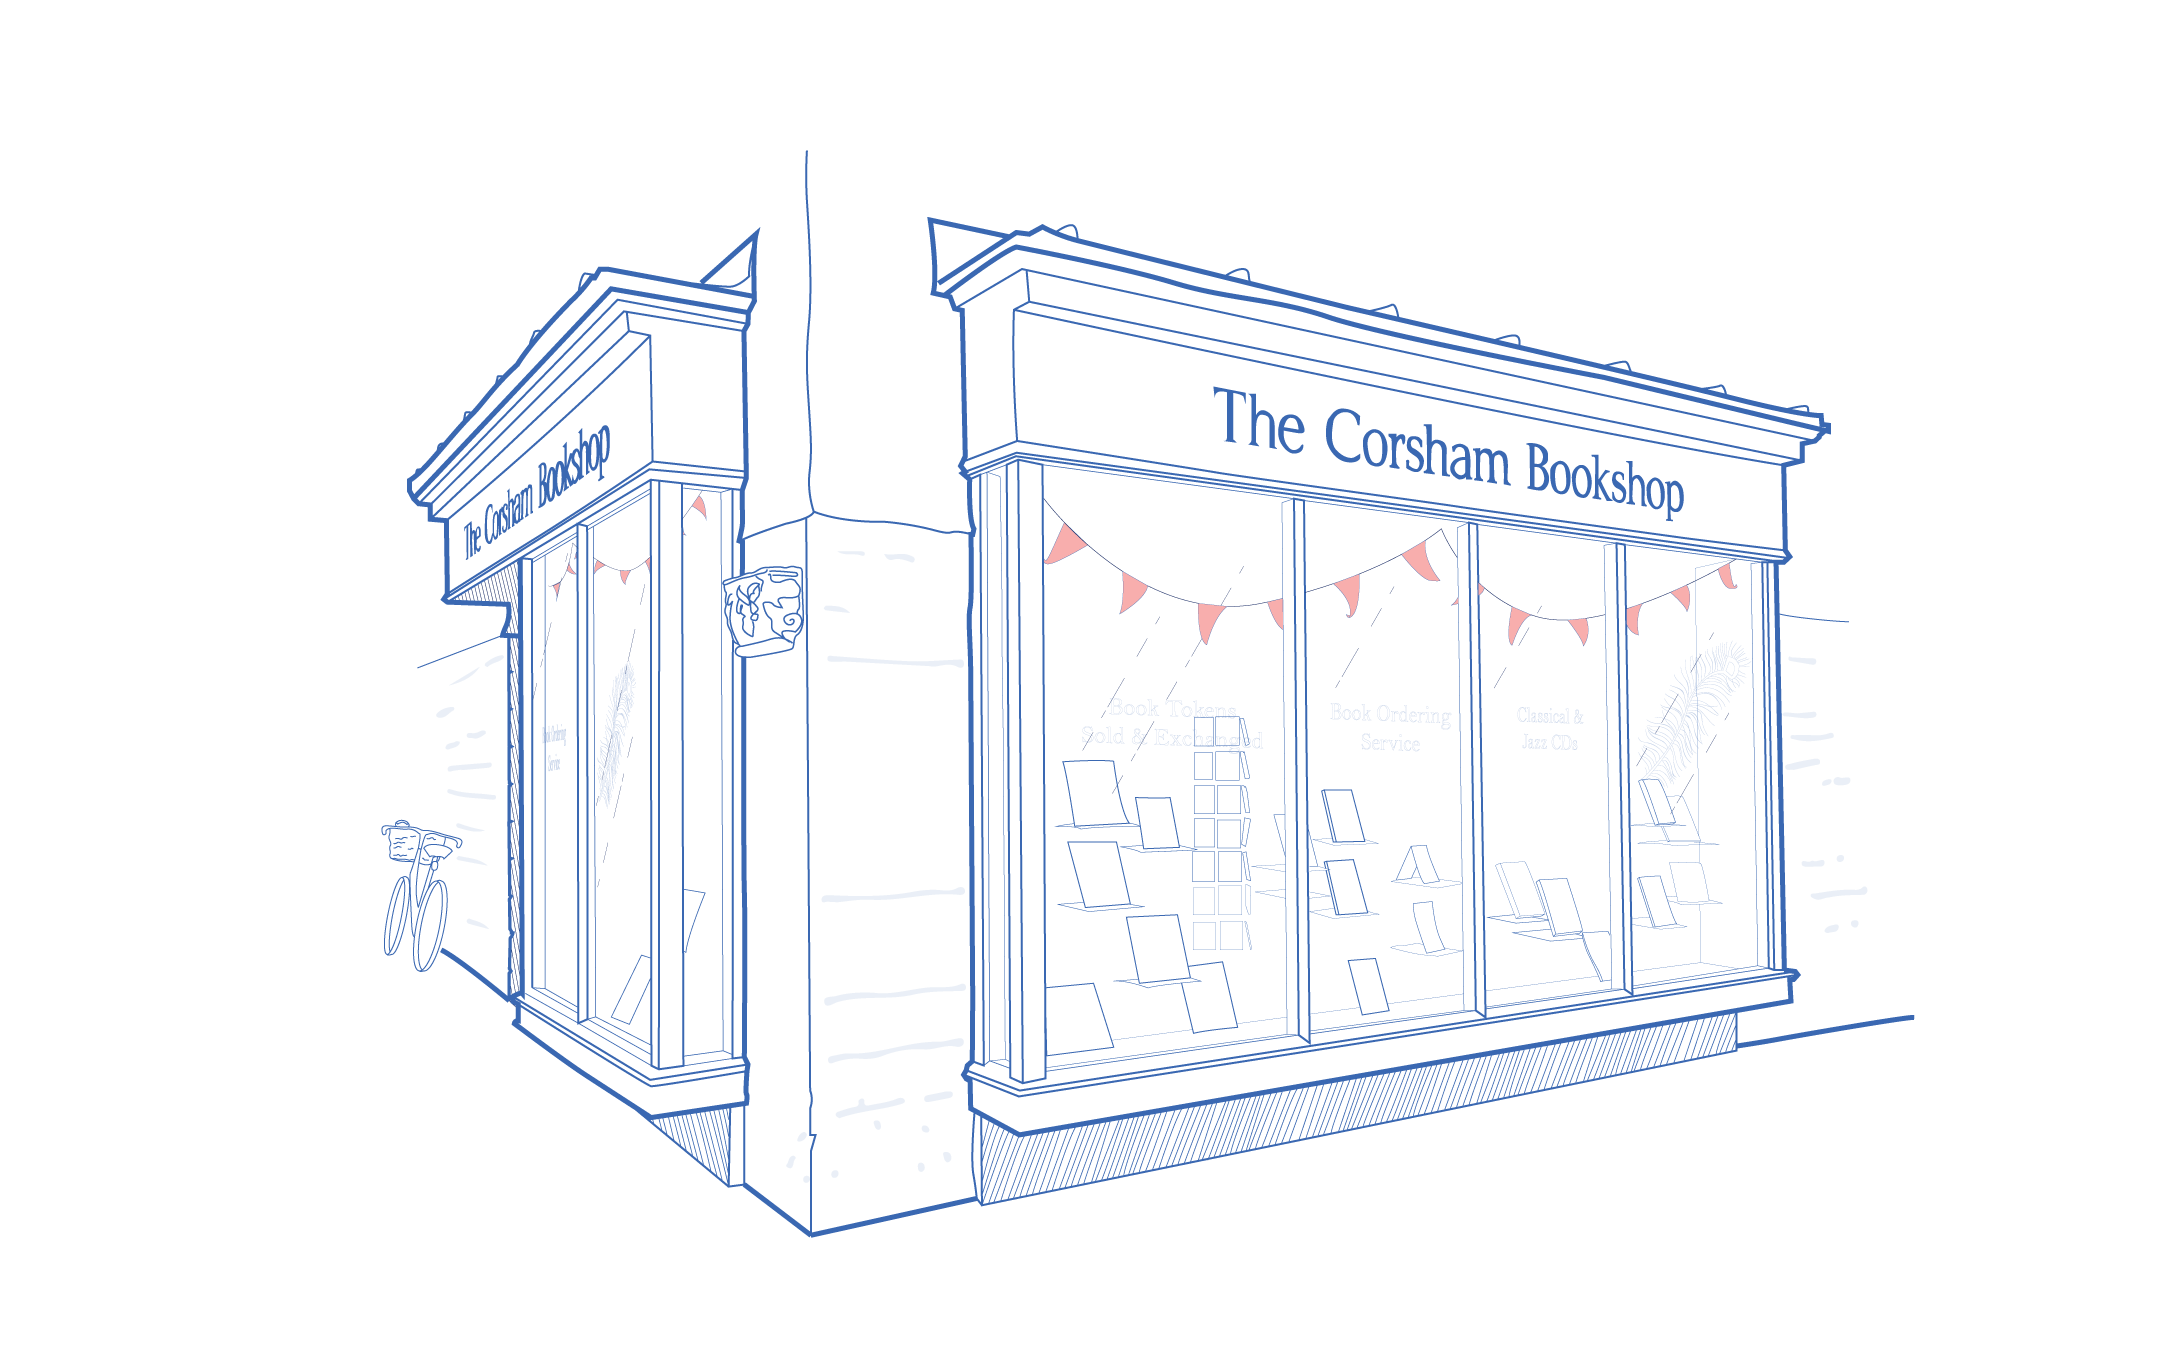 A blue and white architectural illustration of The Corsham Bookshop in Corsham, Wiltshire.